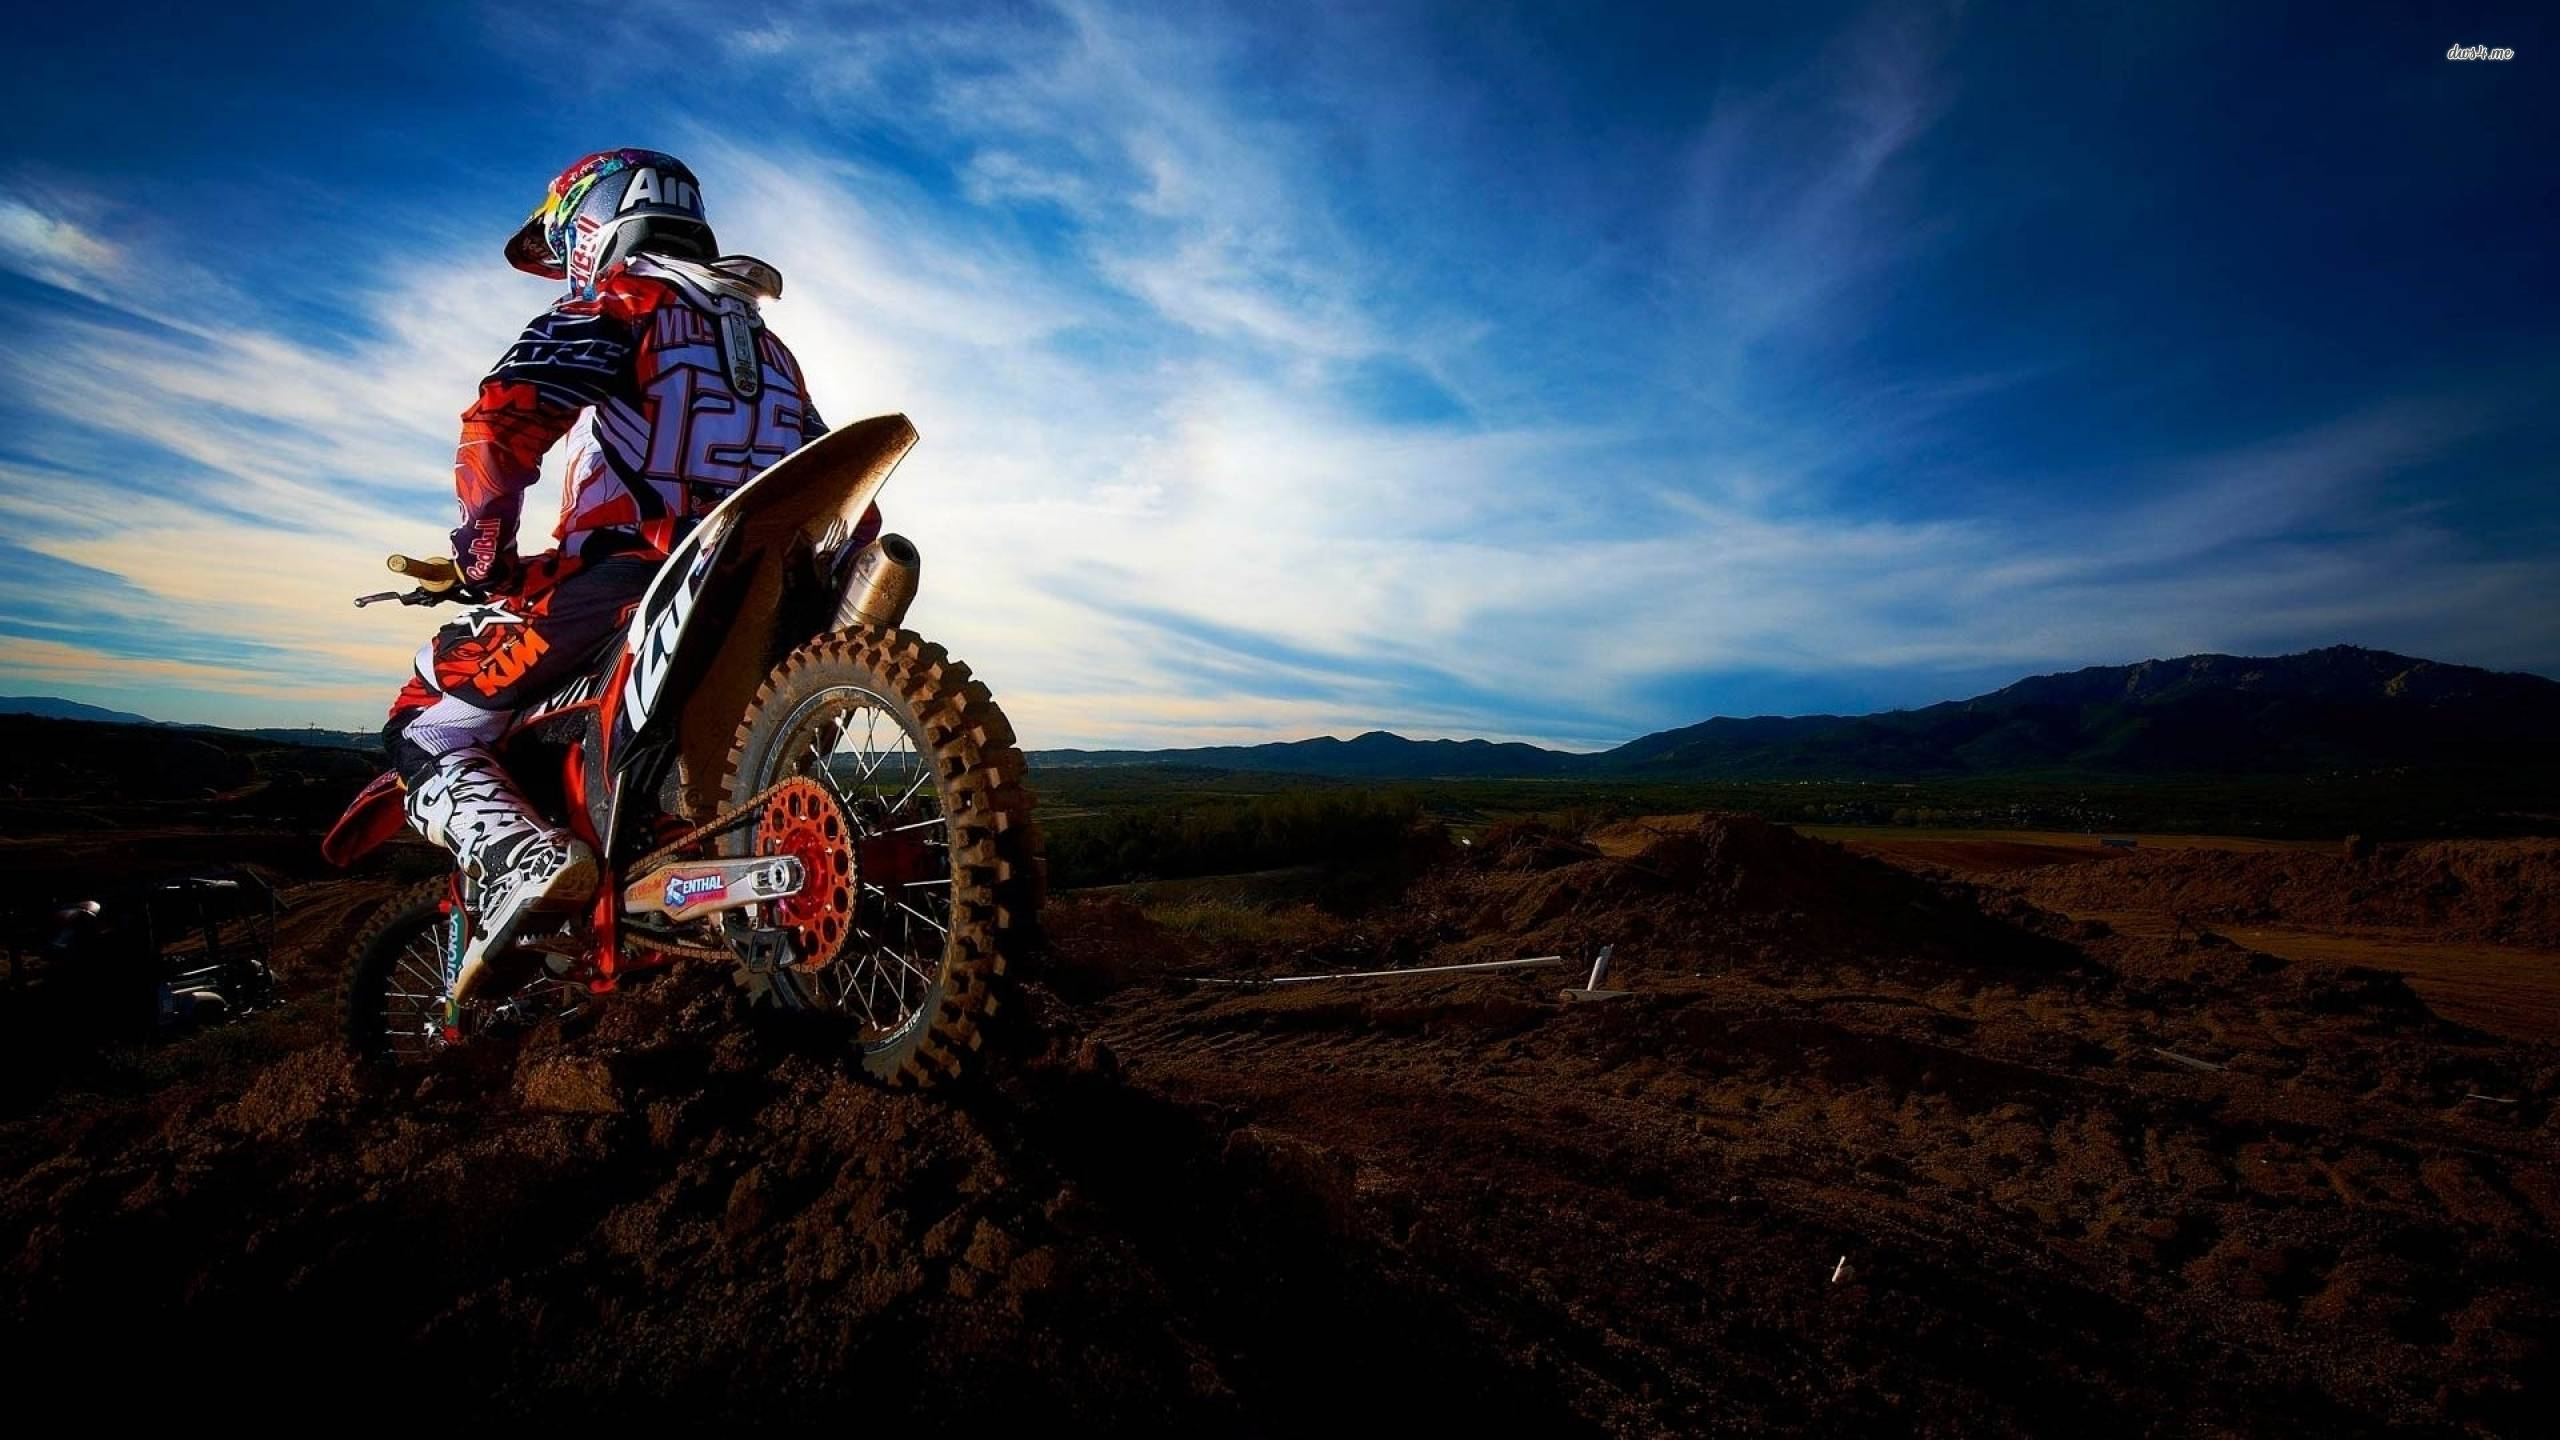 Motocross 2015 Wallpapers - Wallpaper Cave Race 2 Wallpapers Hd